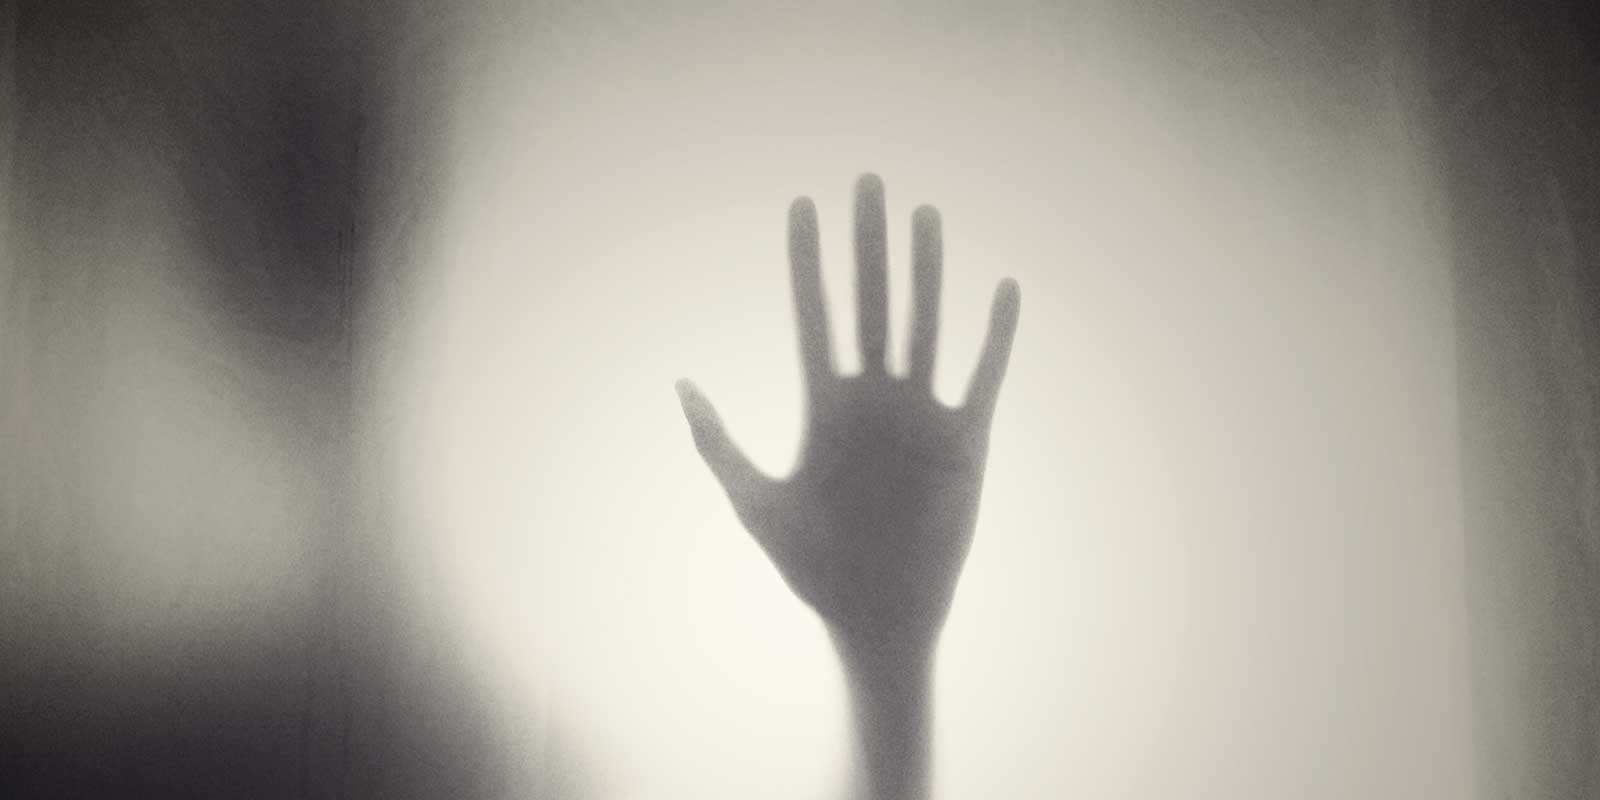 Black and white photo showing a shadow of a single hand